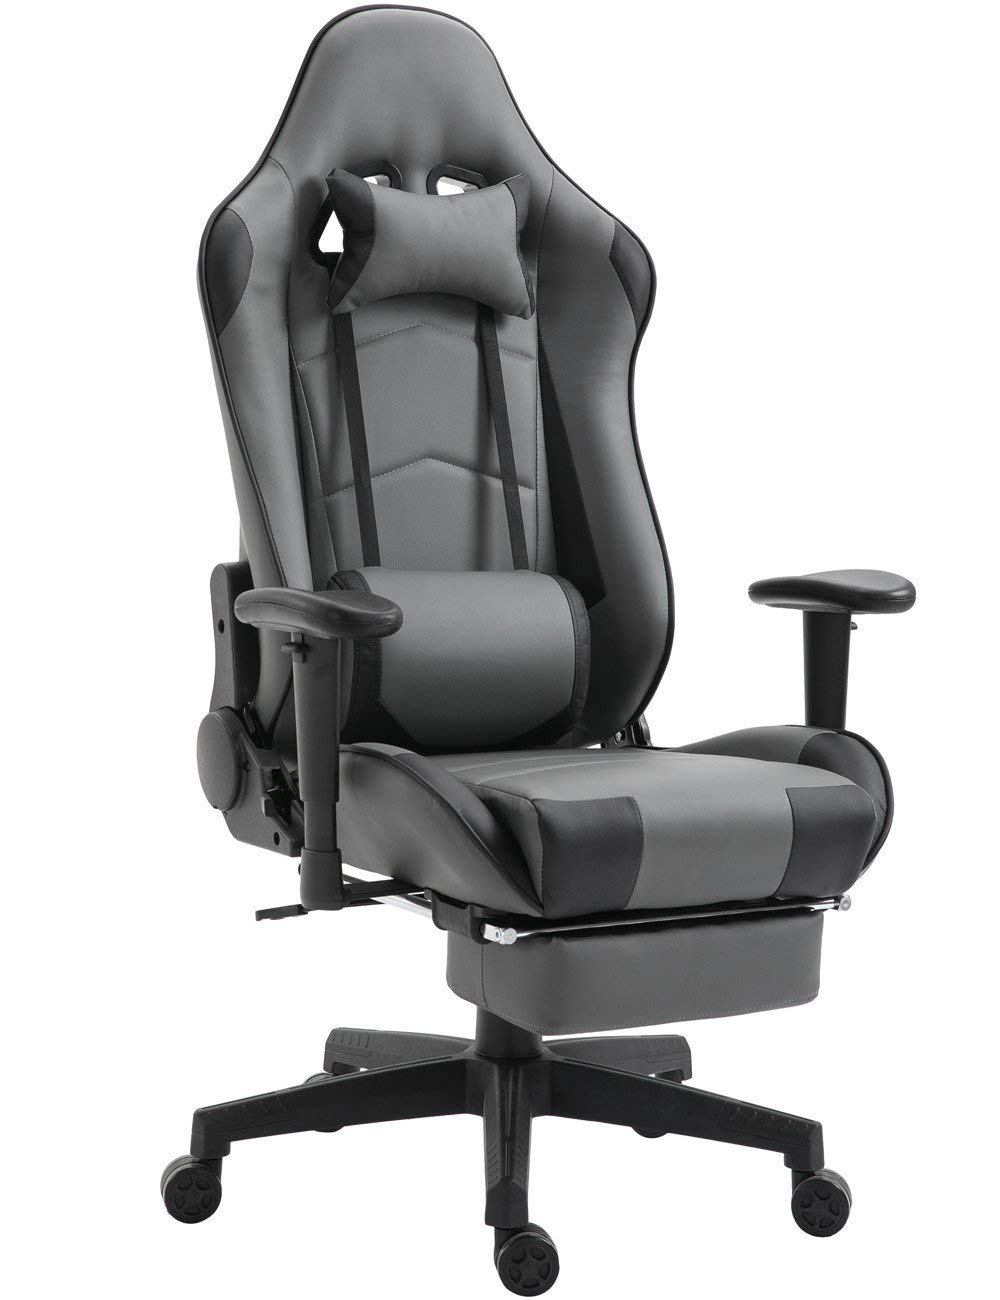 Gaming Chair High Back Ergonomic Racing Chair with Footrest Adjustable Height Swivel Office Chair with Headrest Lumbar Support (Grey/Black)